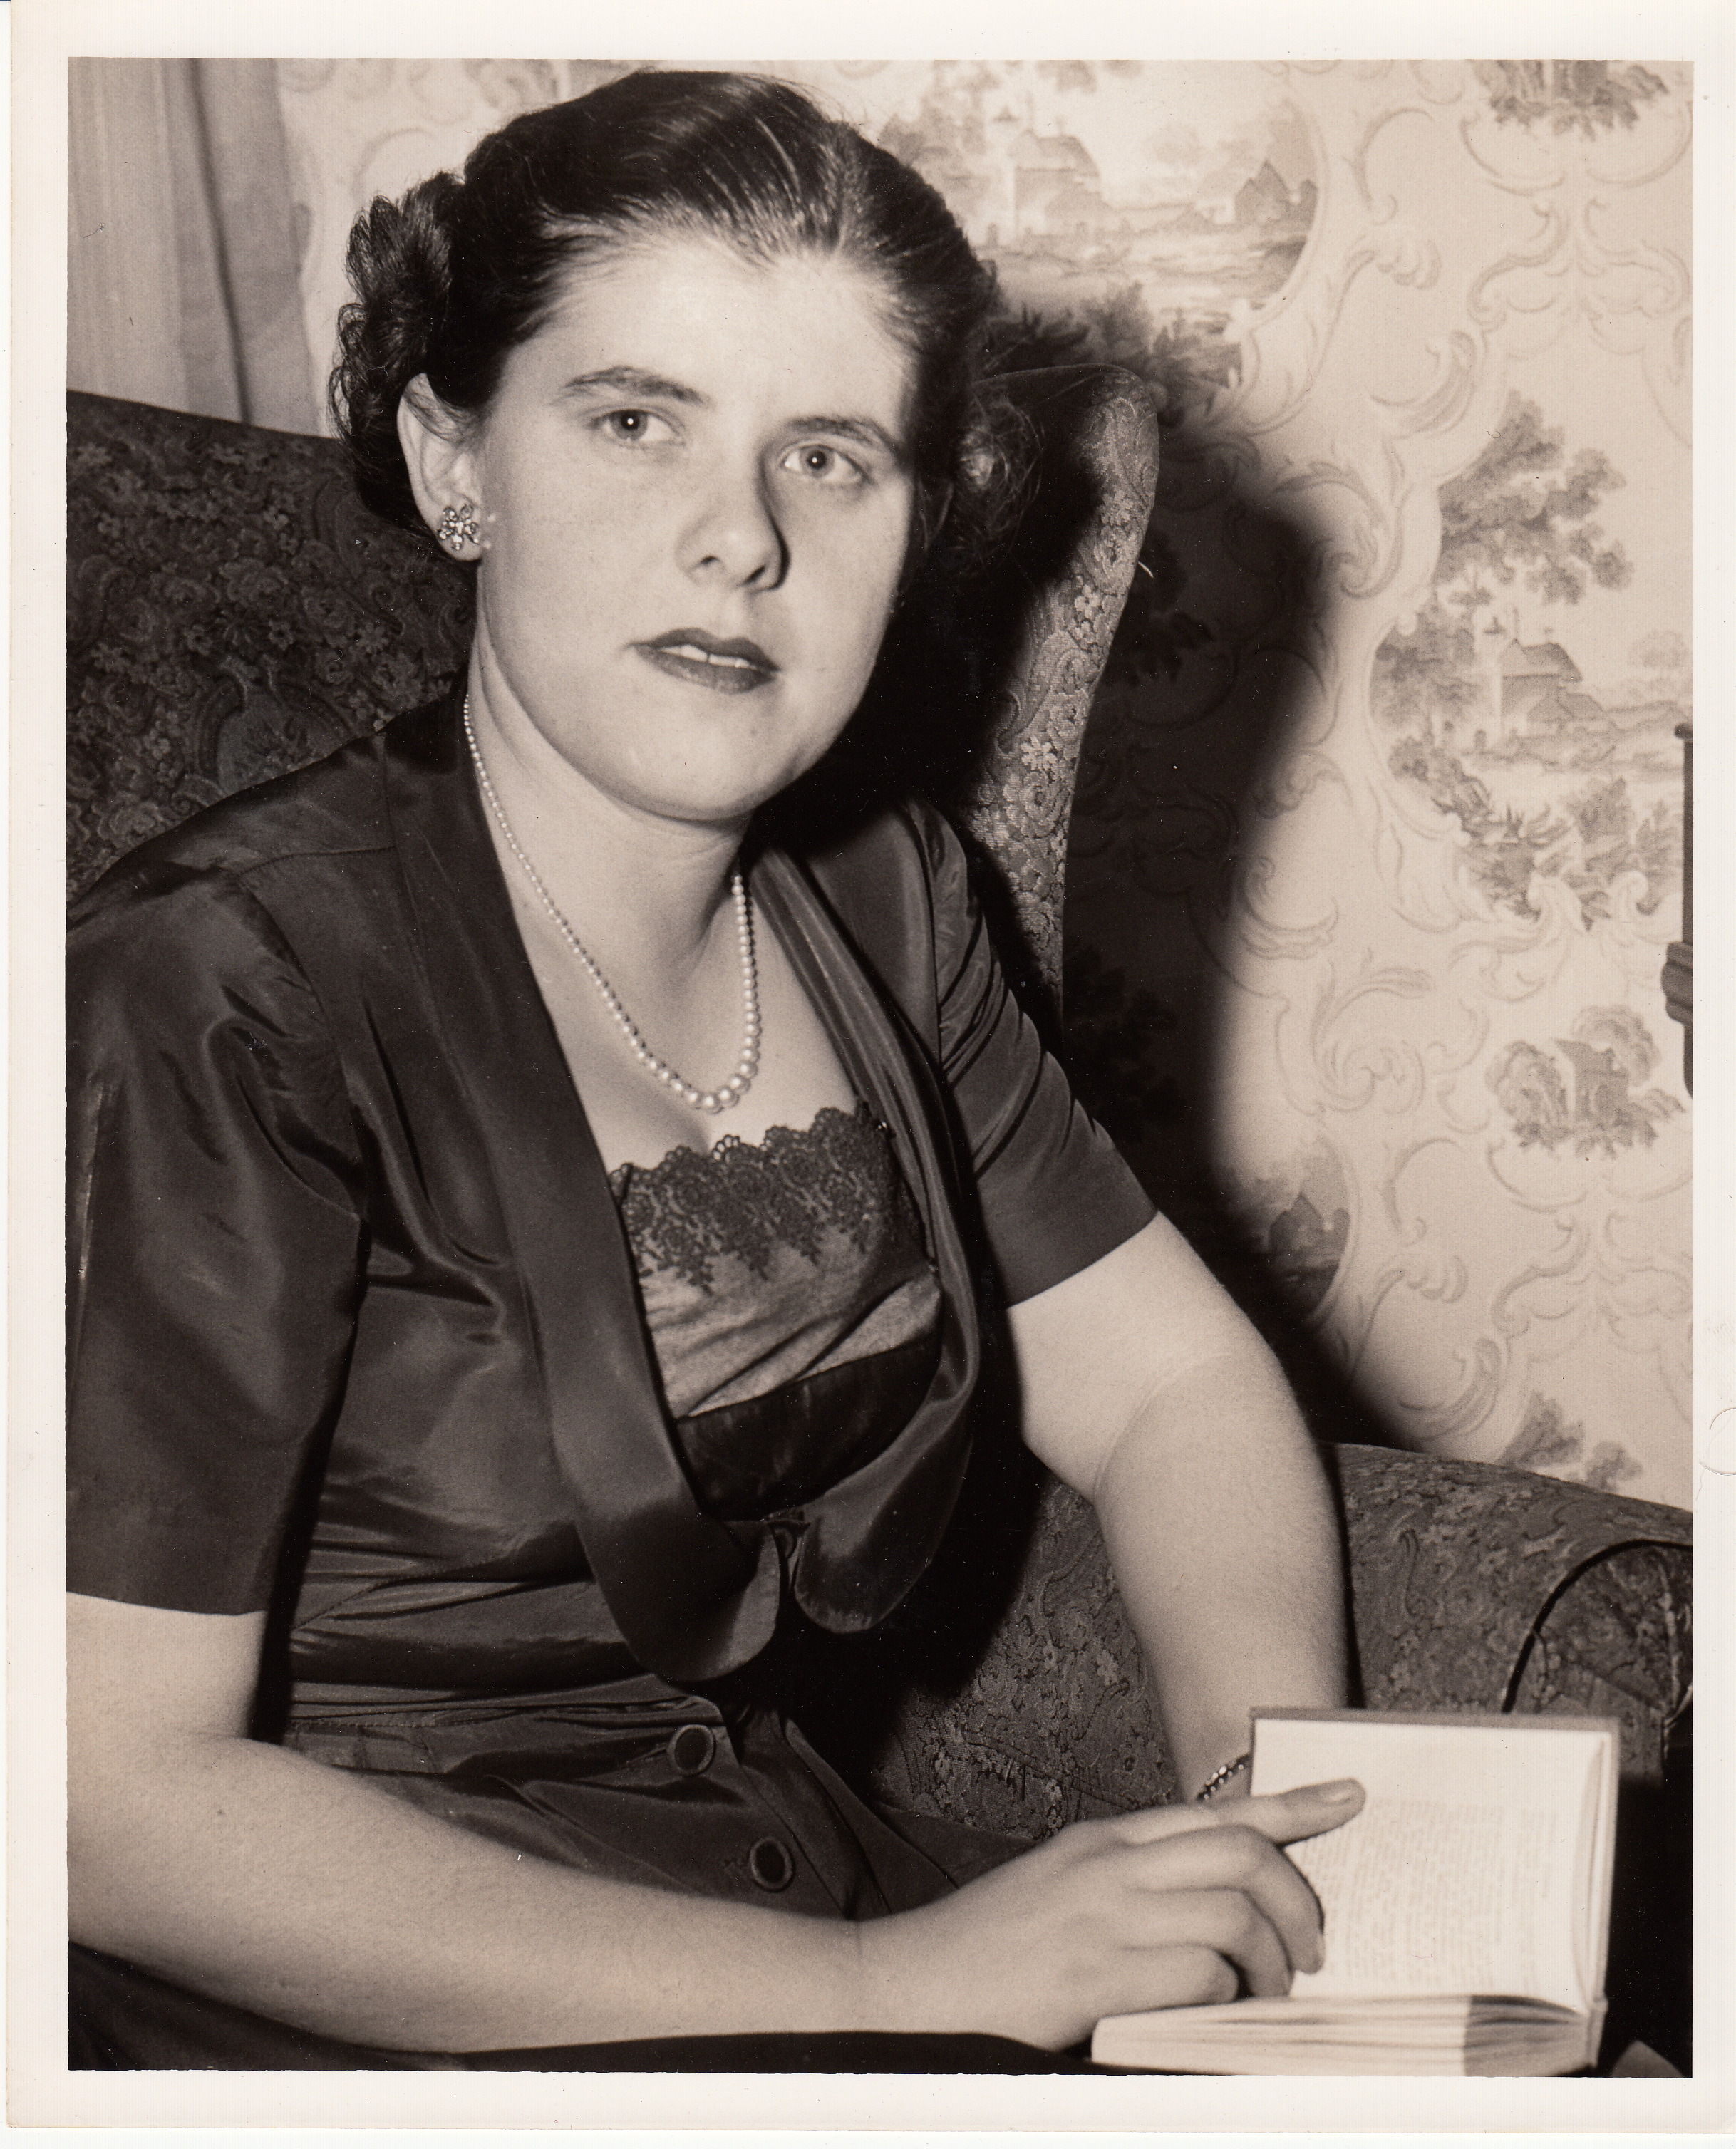 Photograph of Betty Masters, courtesy of Wayne Clark.